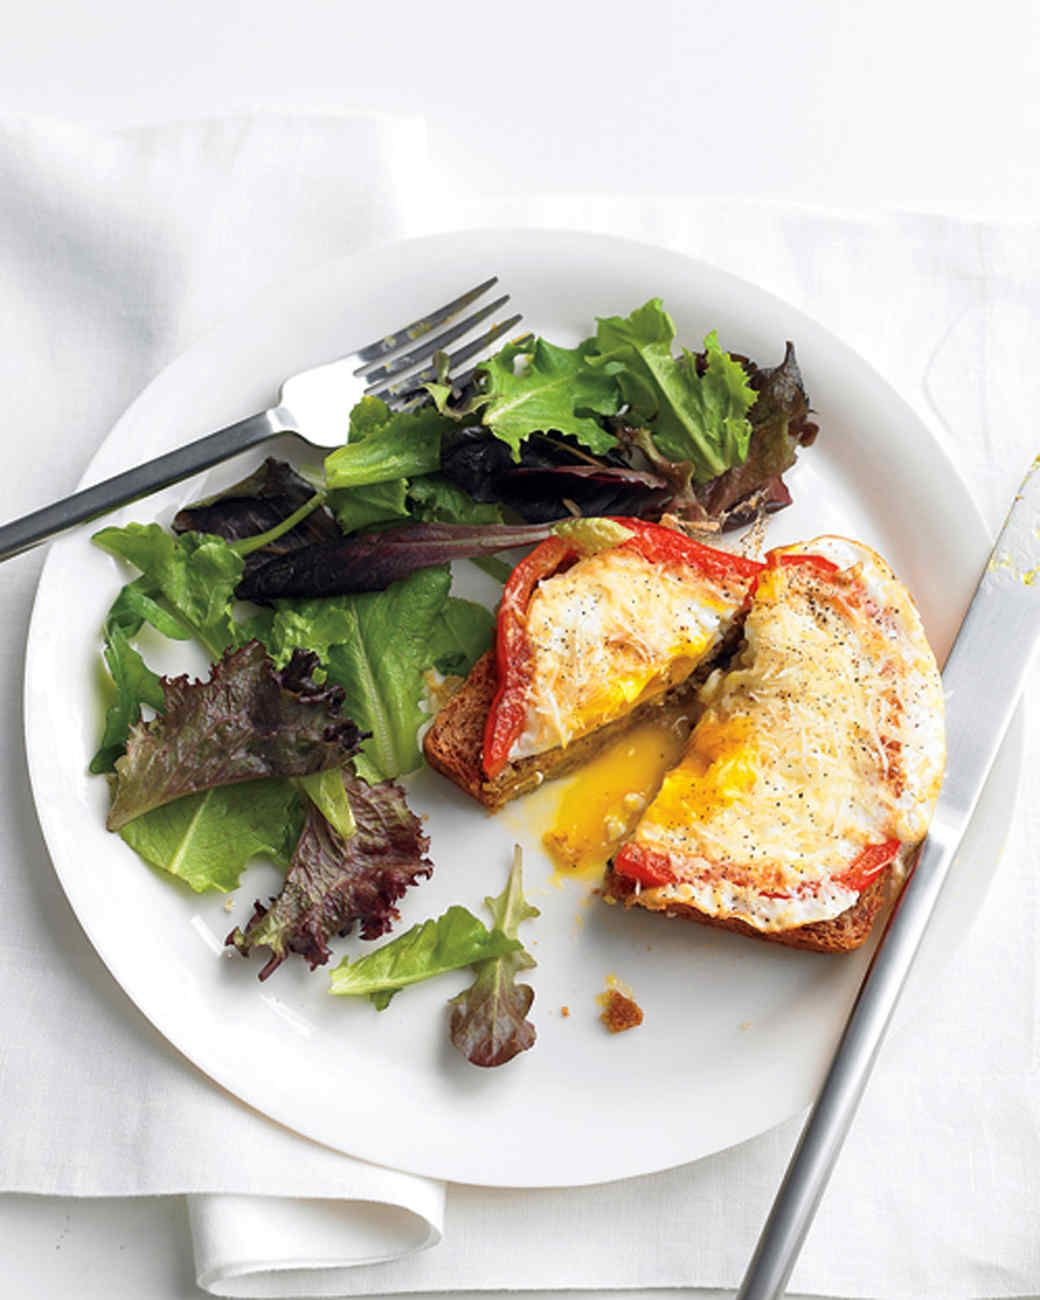 Bell Pepper Egg-in-a-Hole Recipe | Martha Stewart Living — We lightened up the classic egg-in-a-hole by swapping out the usual fried bread slices for fresh bell peppers and serving the whole thing on multigrain toast.